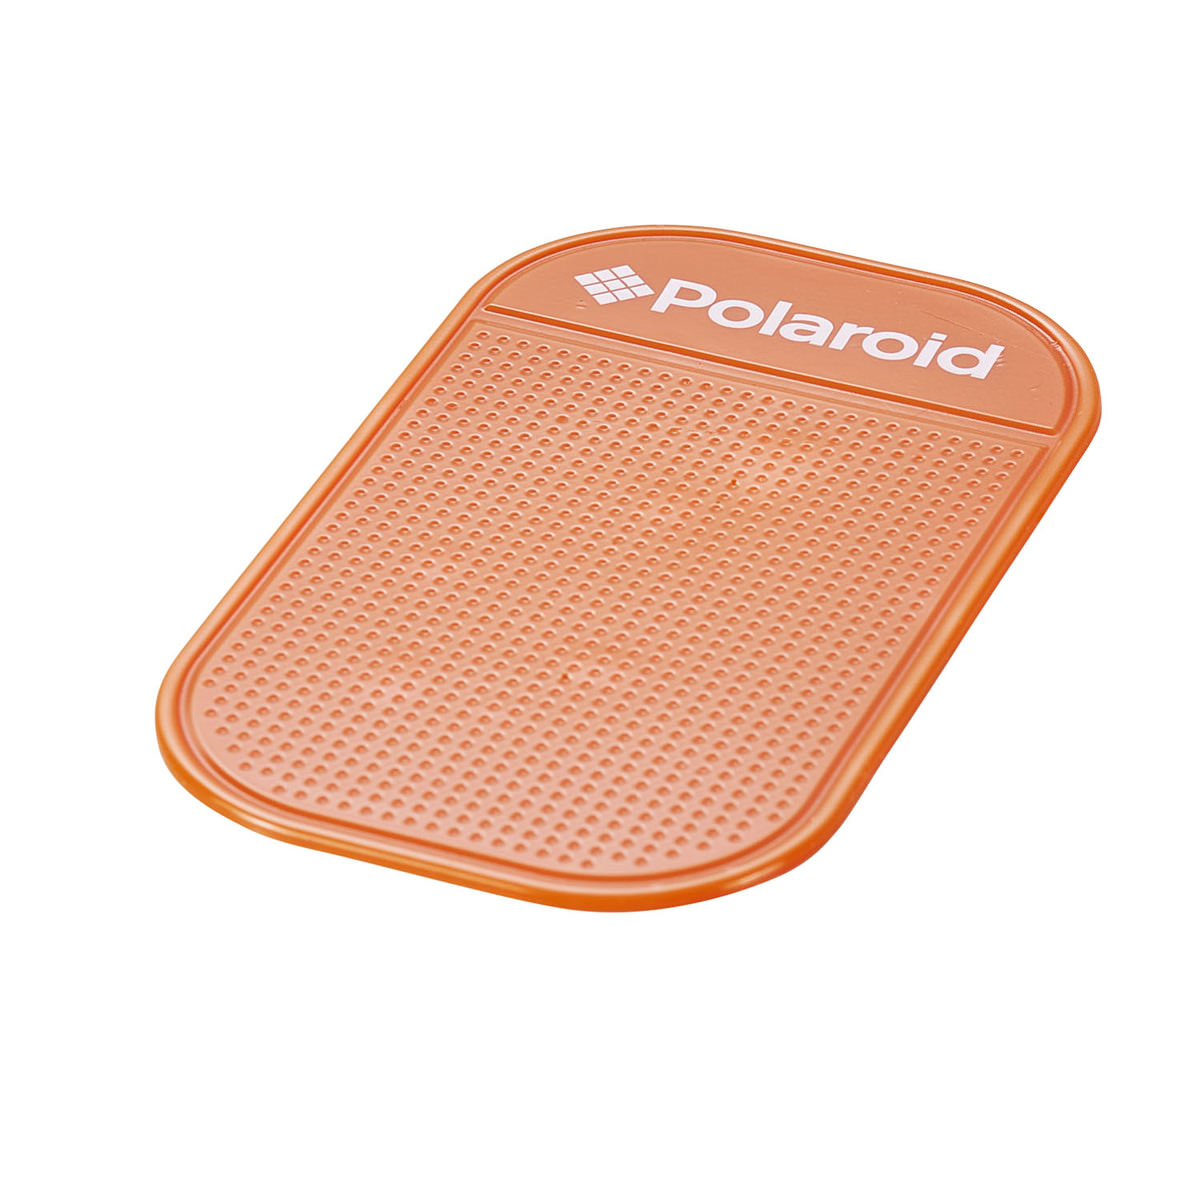 Anti Rutsch Pad Teppich Polaroid Anti Rutsch Pad In Orange 14 5 X 8 5 Cm